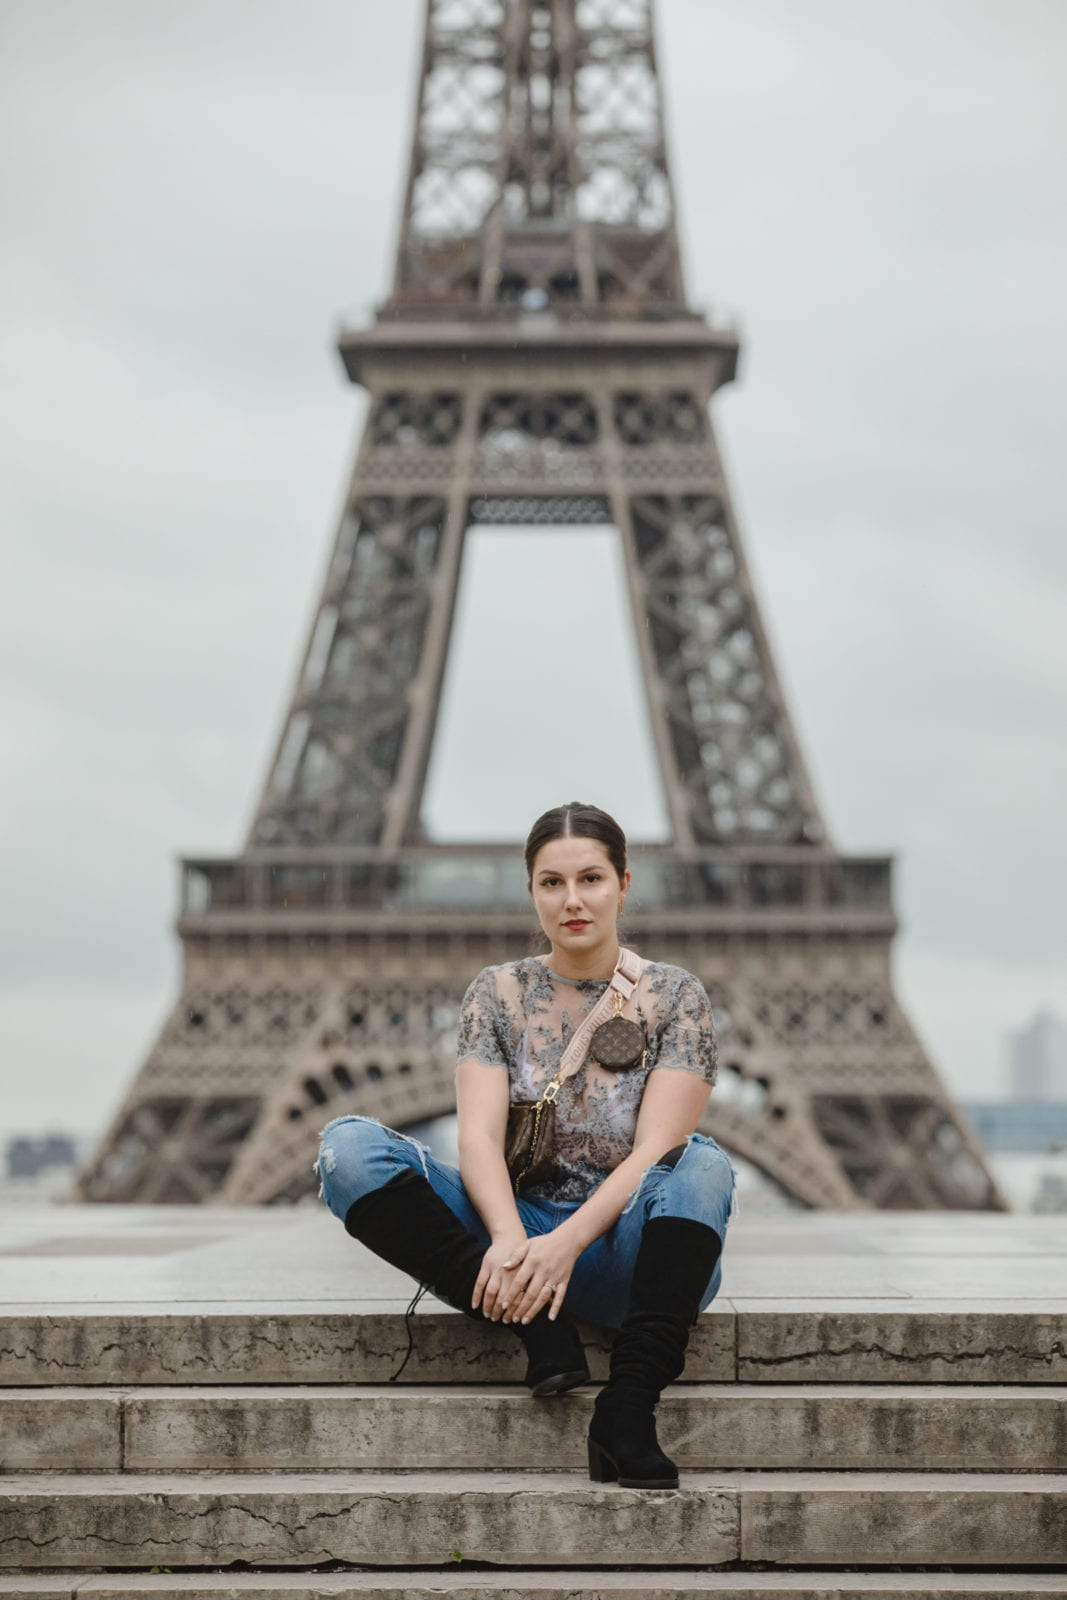 Sitting on the steps by Trocadéro in front of the Eiffel Tower.